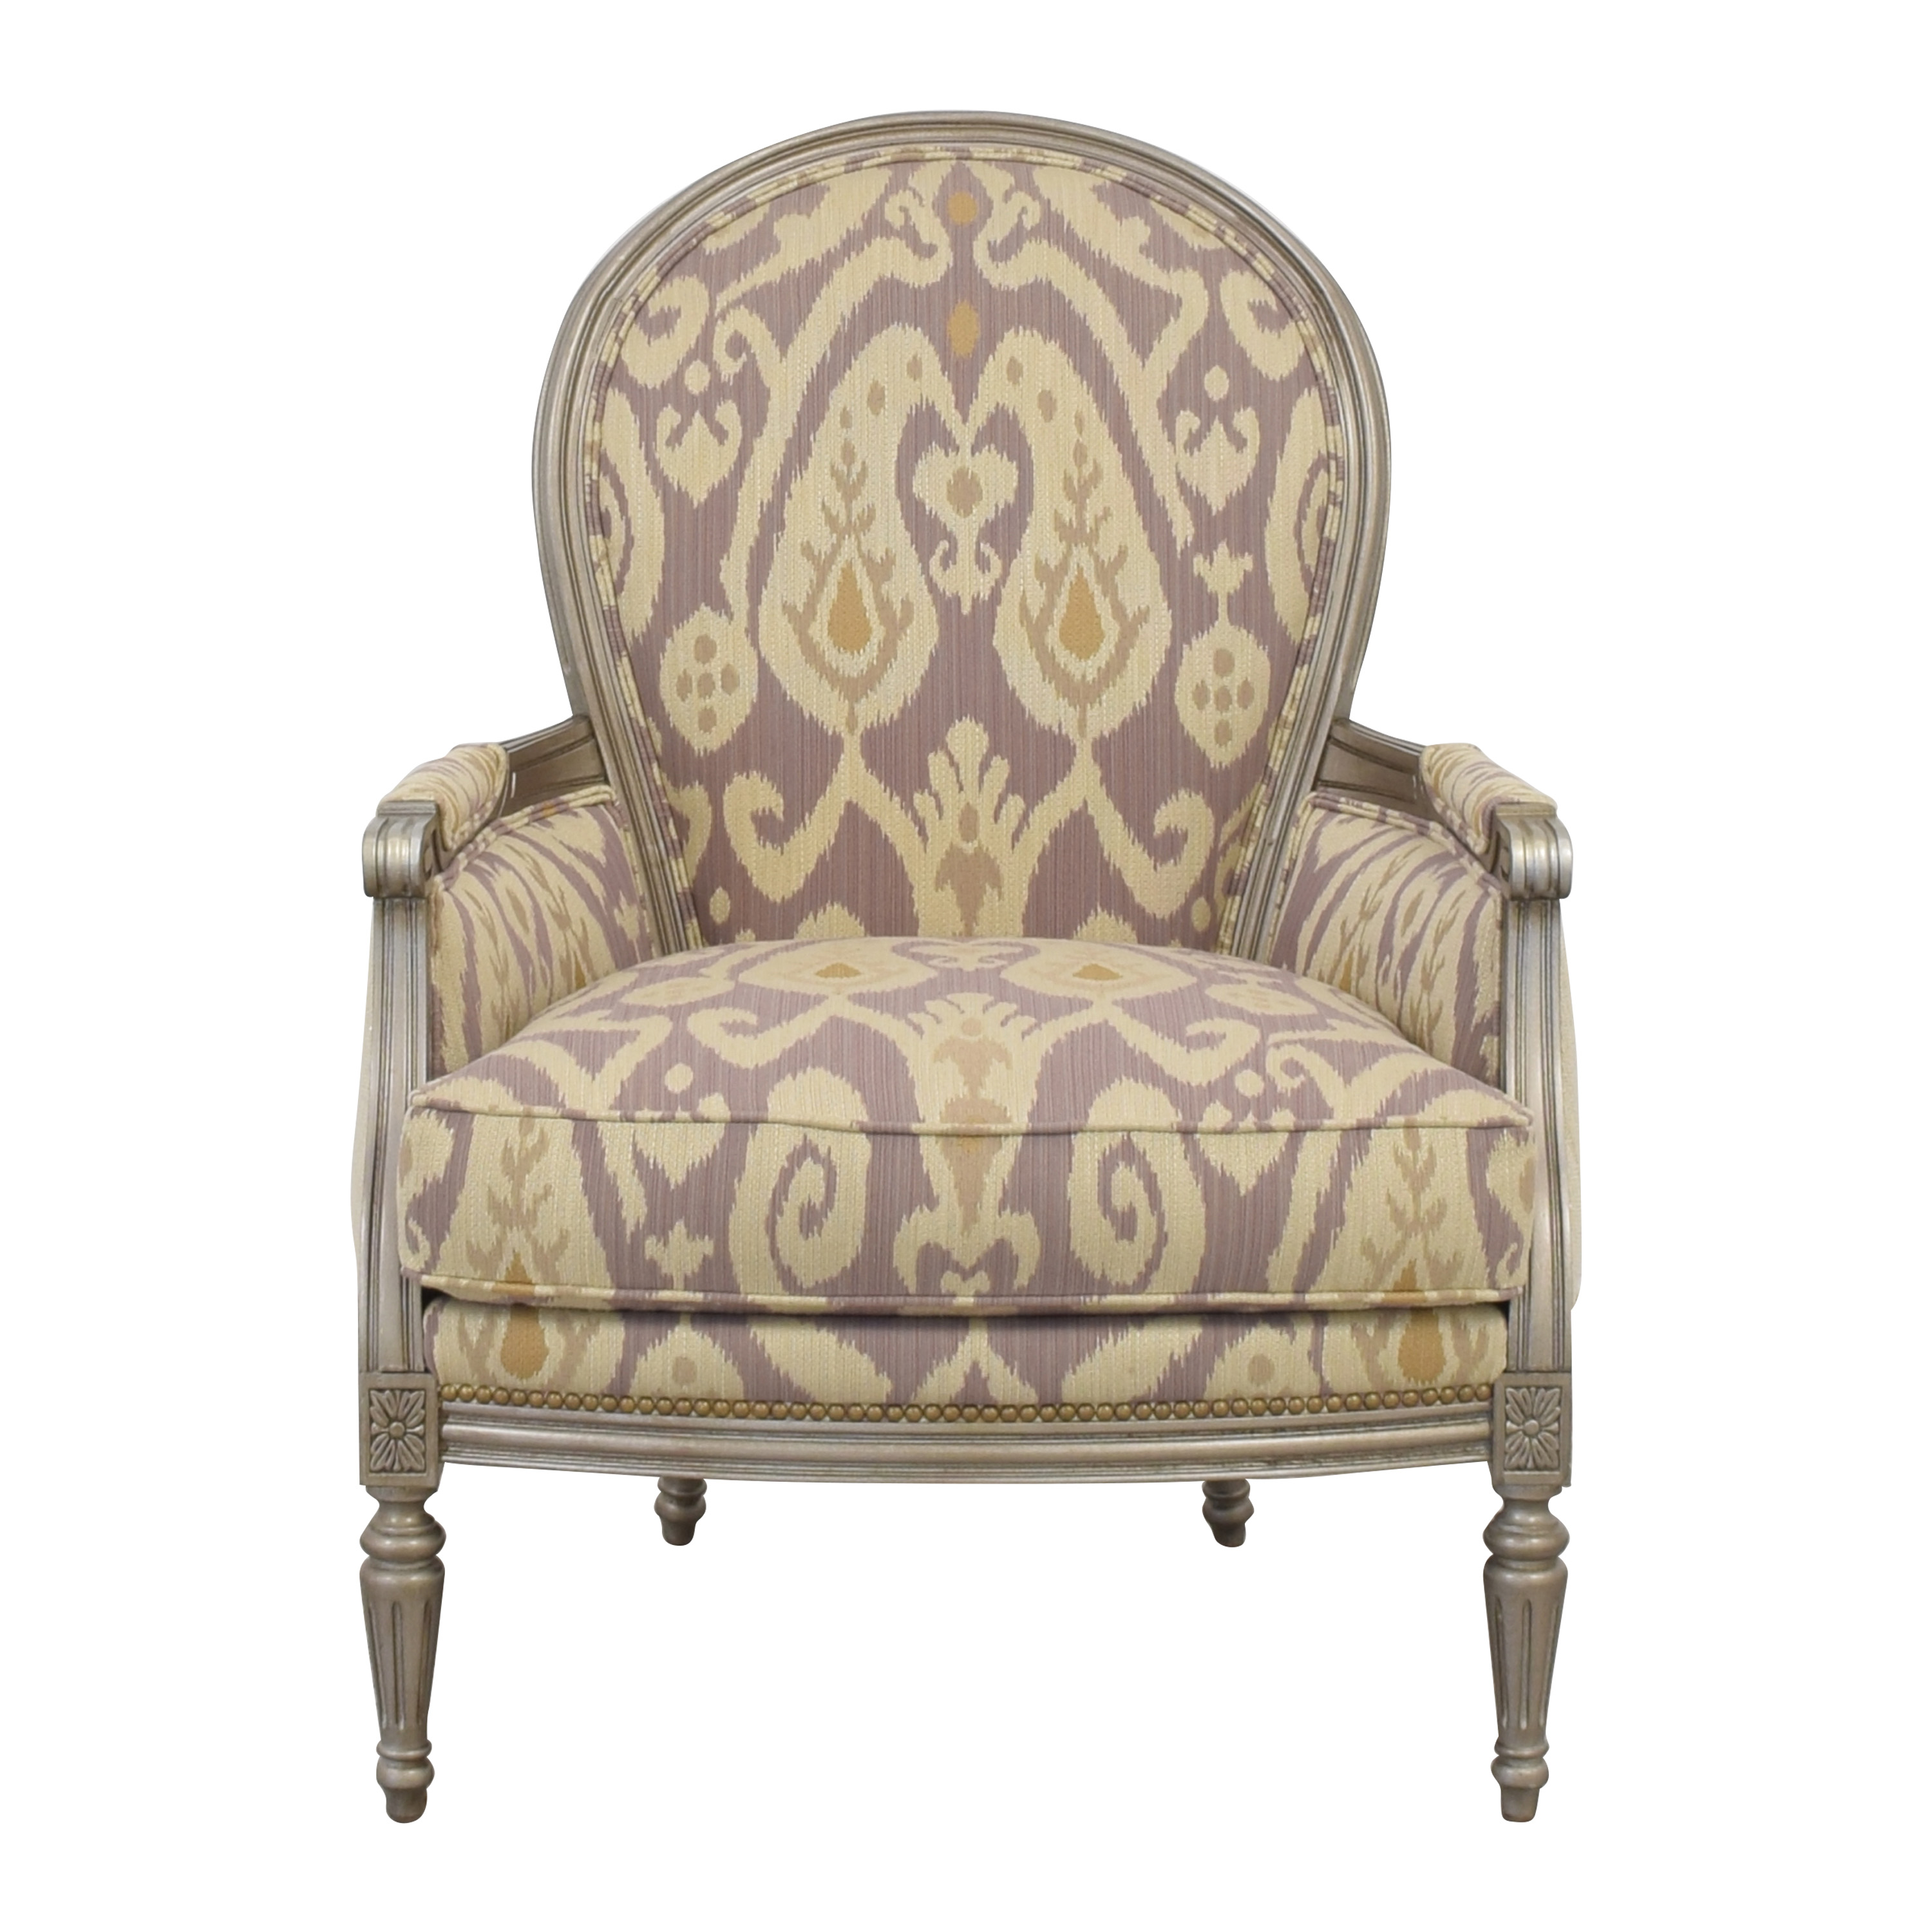 Ethan Allen Ethan Allen Suzette Chair price